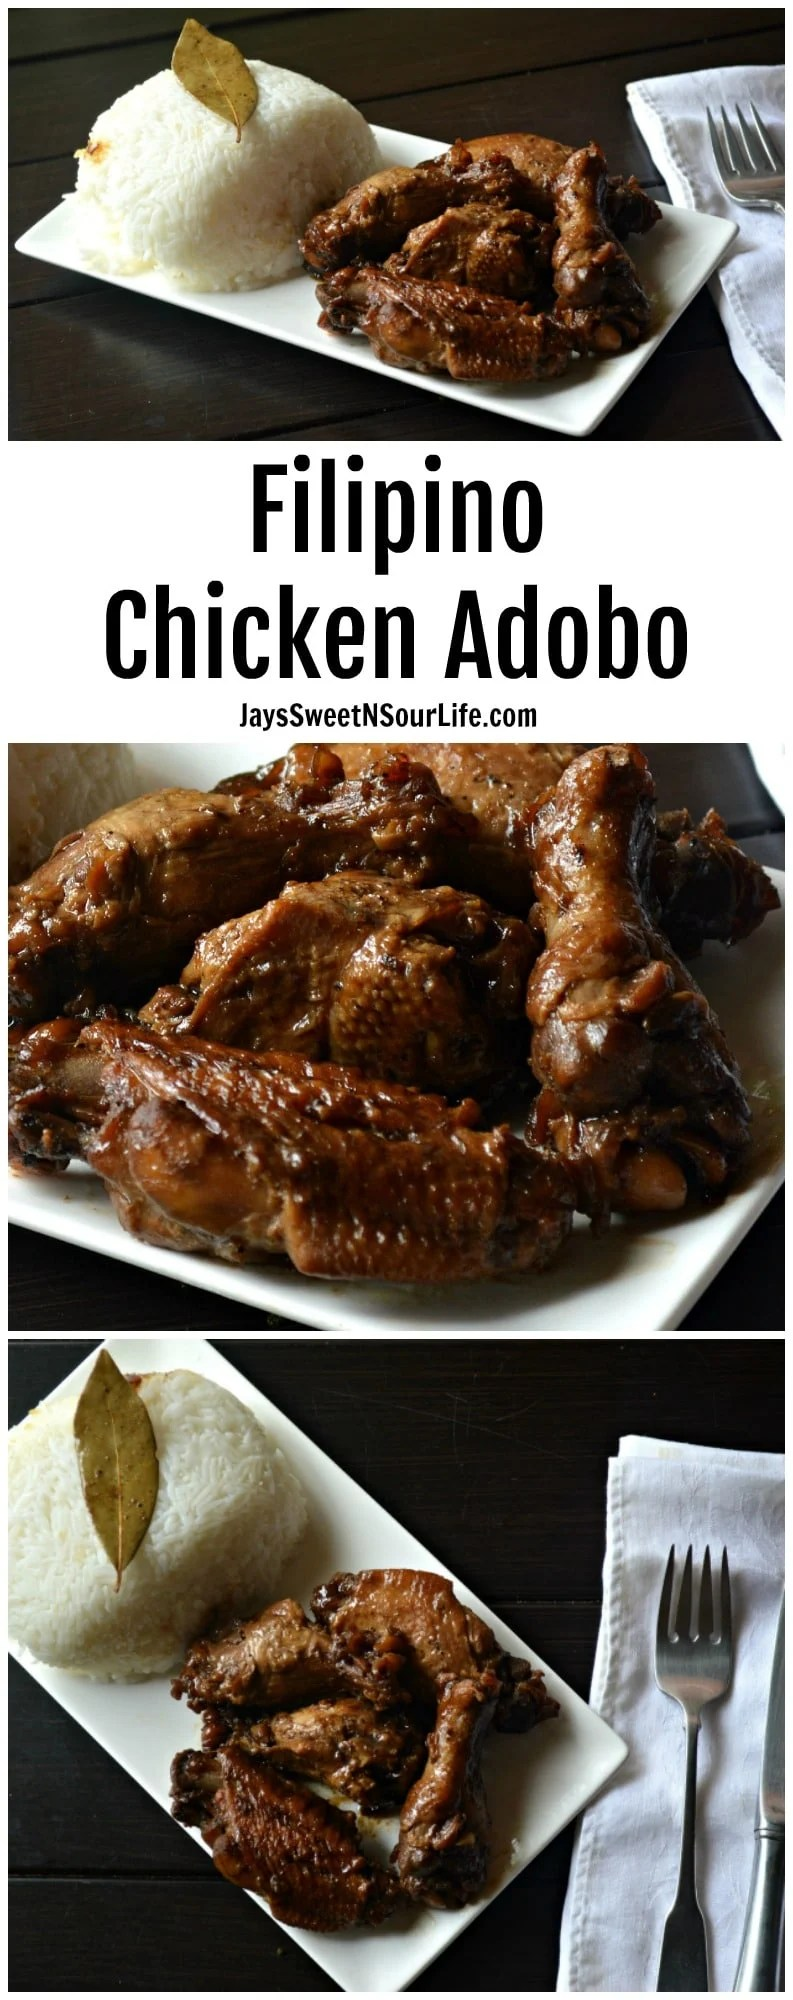 Finger licking good Filipino Chicken Adobo the way my Tita Jho made it. This Filipino style chickane adobo is a famous family recipe thats perfect for potlucks and dinner with the family.